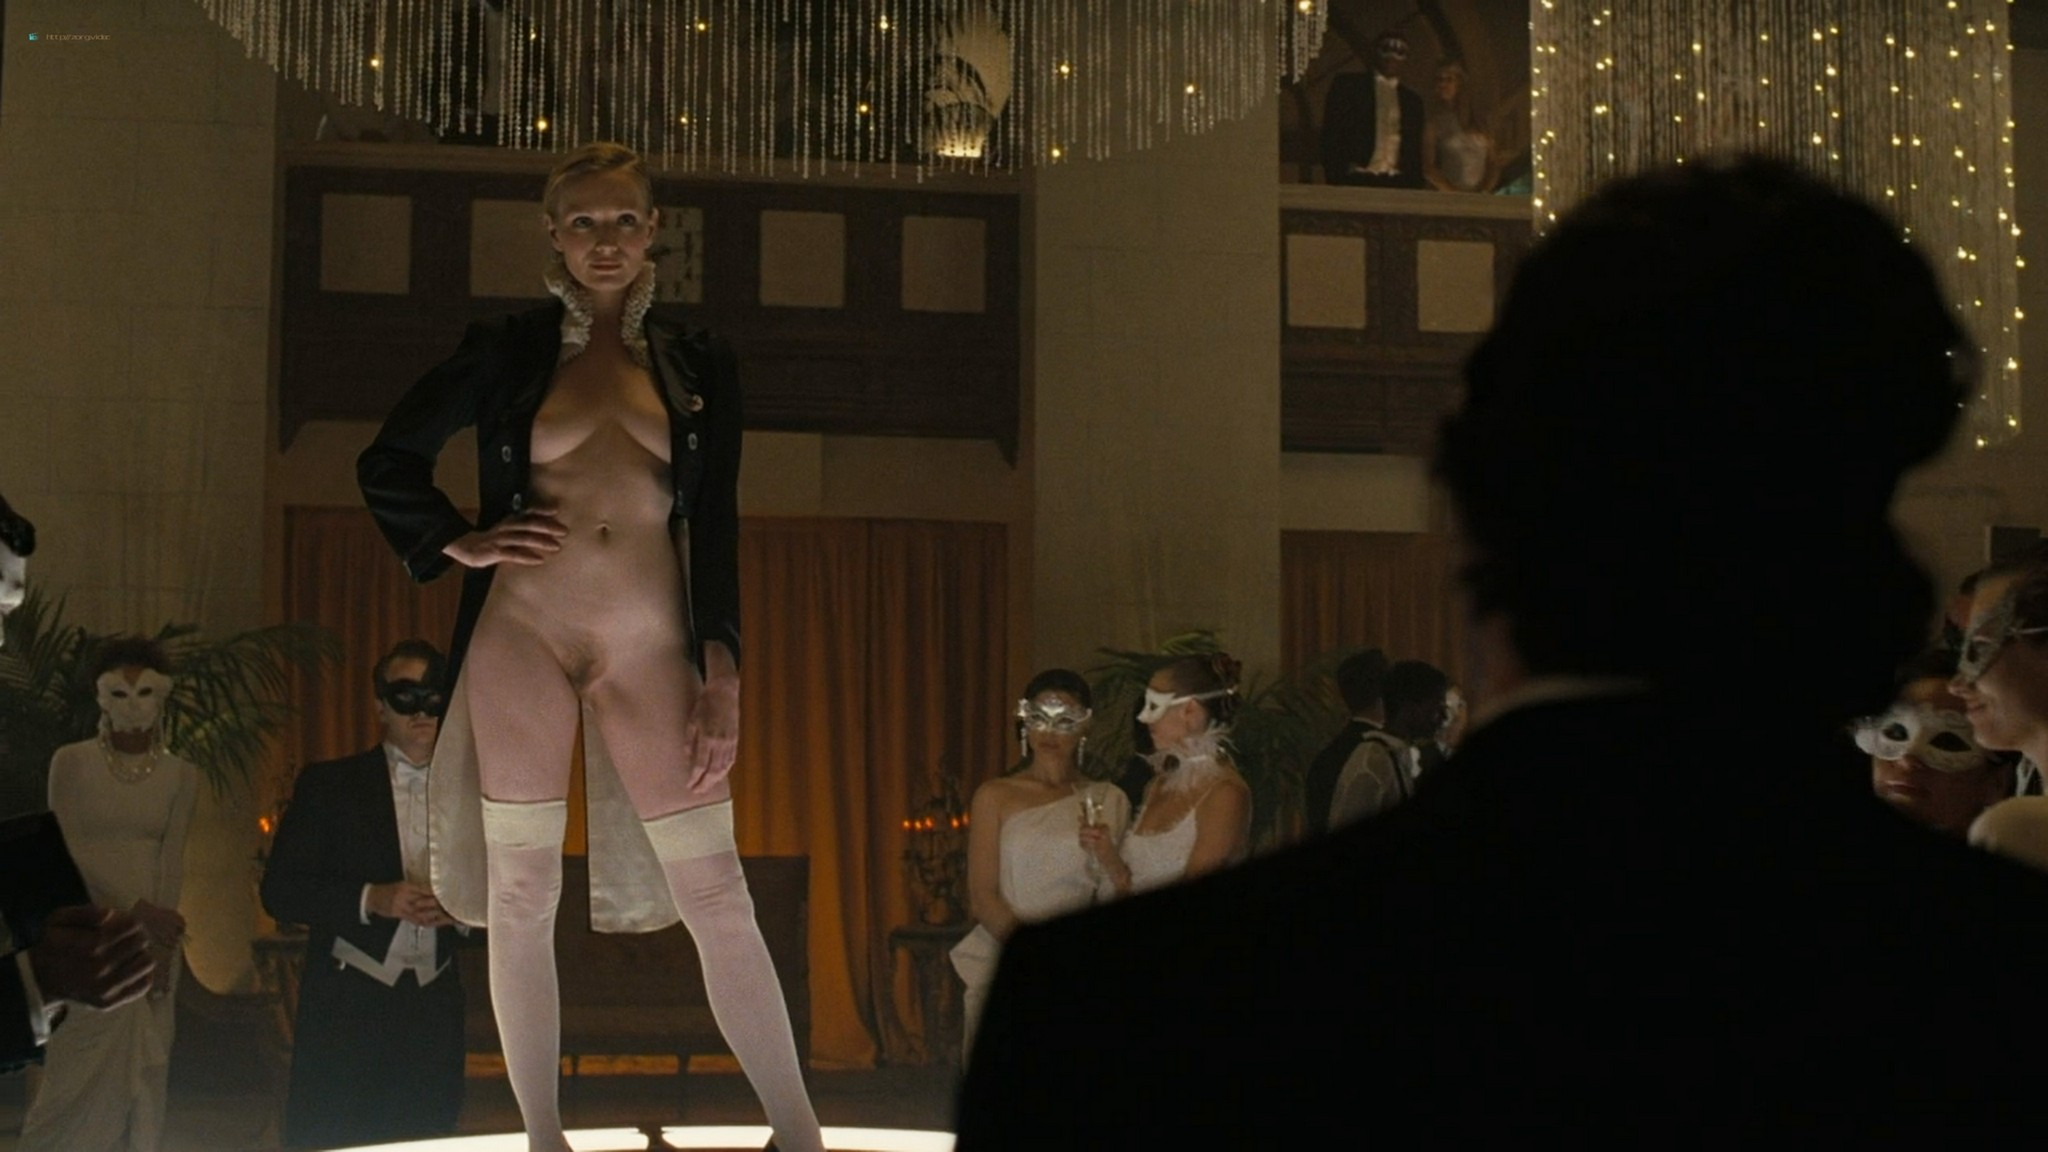 Katherine Murphy nude full frontal - Westworld (2020) s3e4 HD 1080p (7)